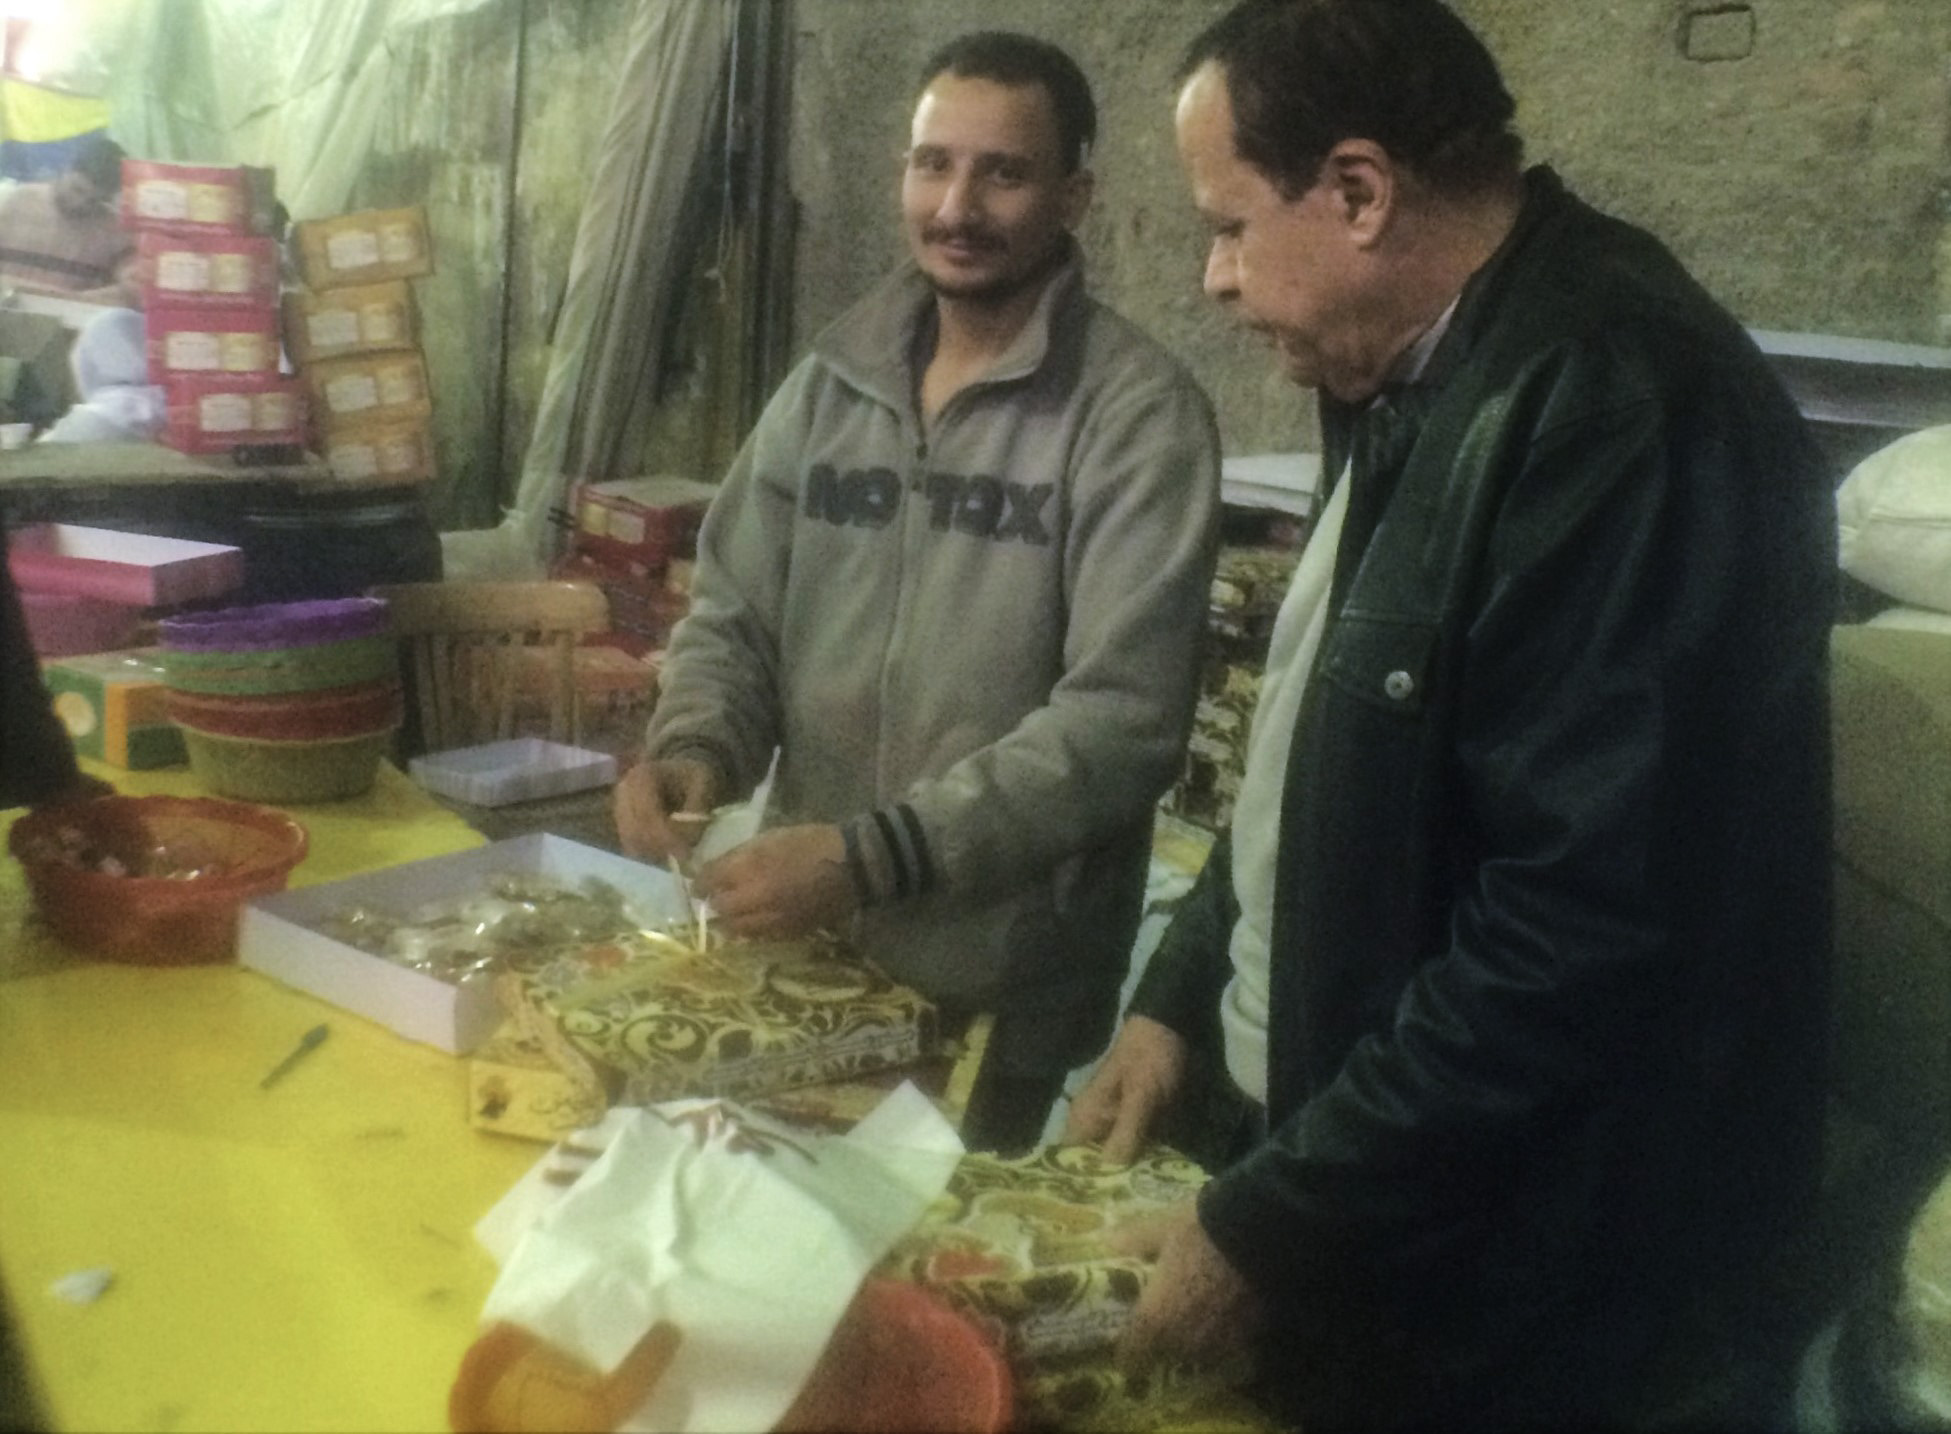 Packing el-Moulid sweets in Bein el-Harat Street. Phone photo by Nayrouz Talaat.